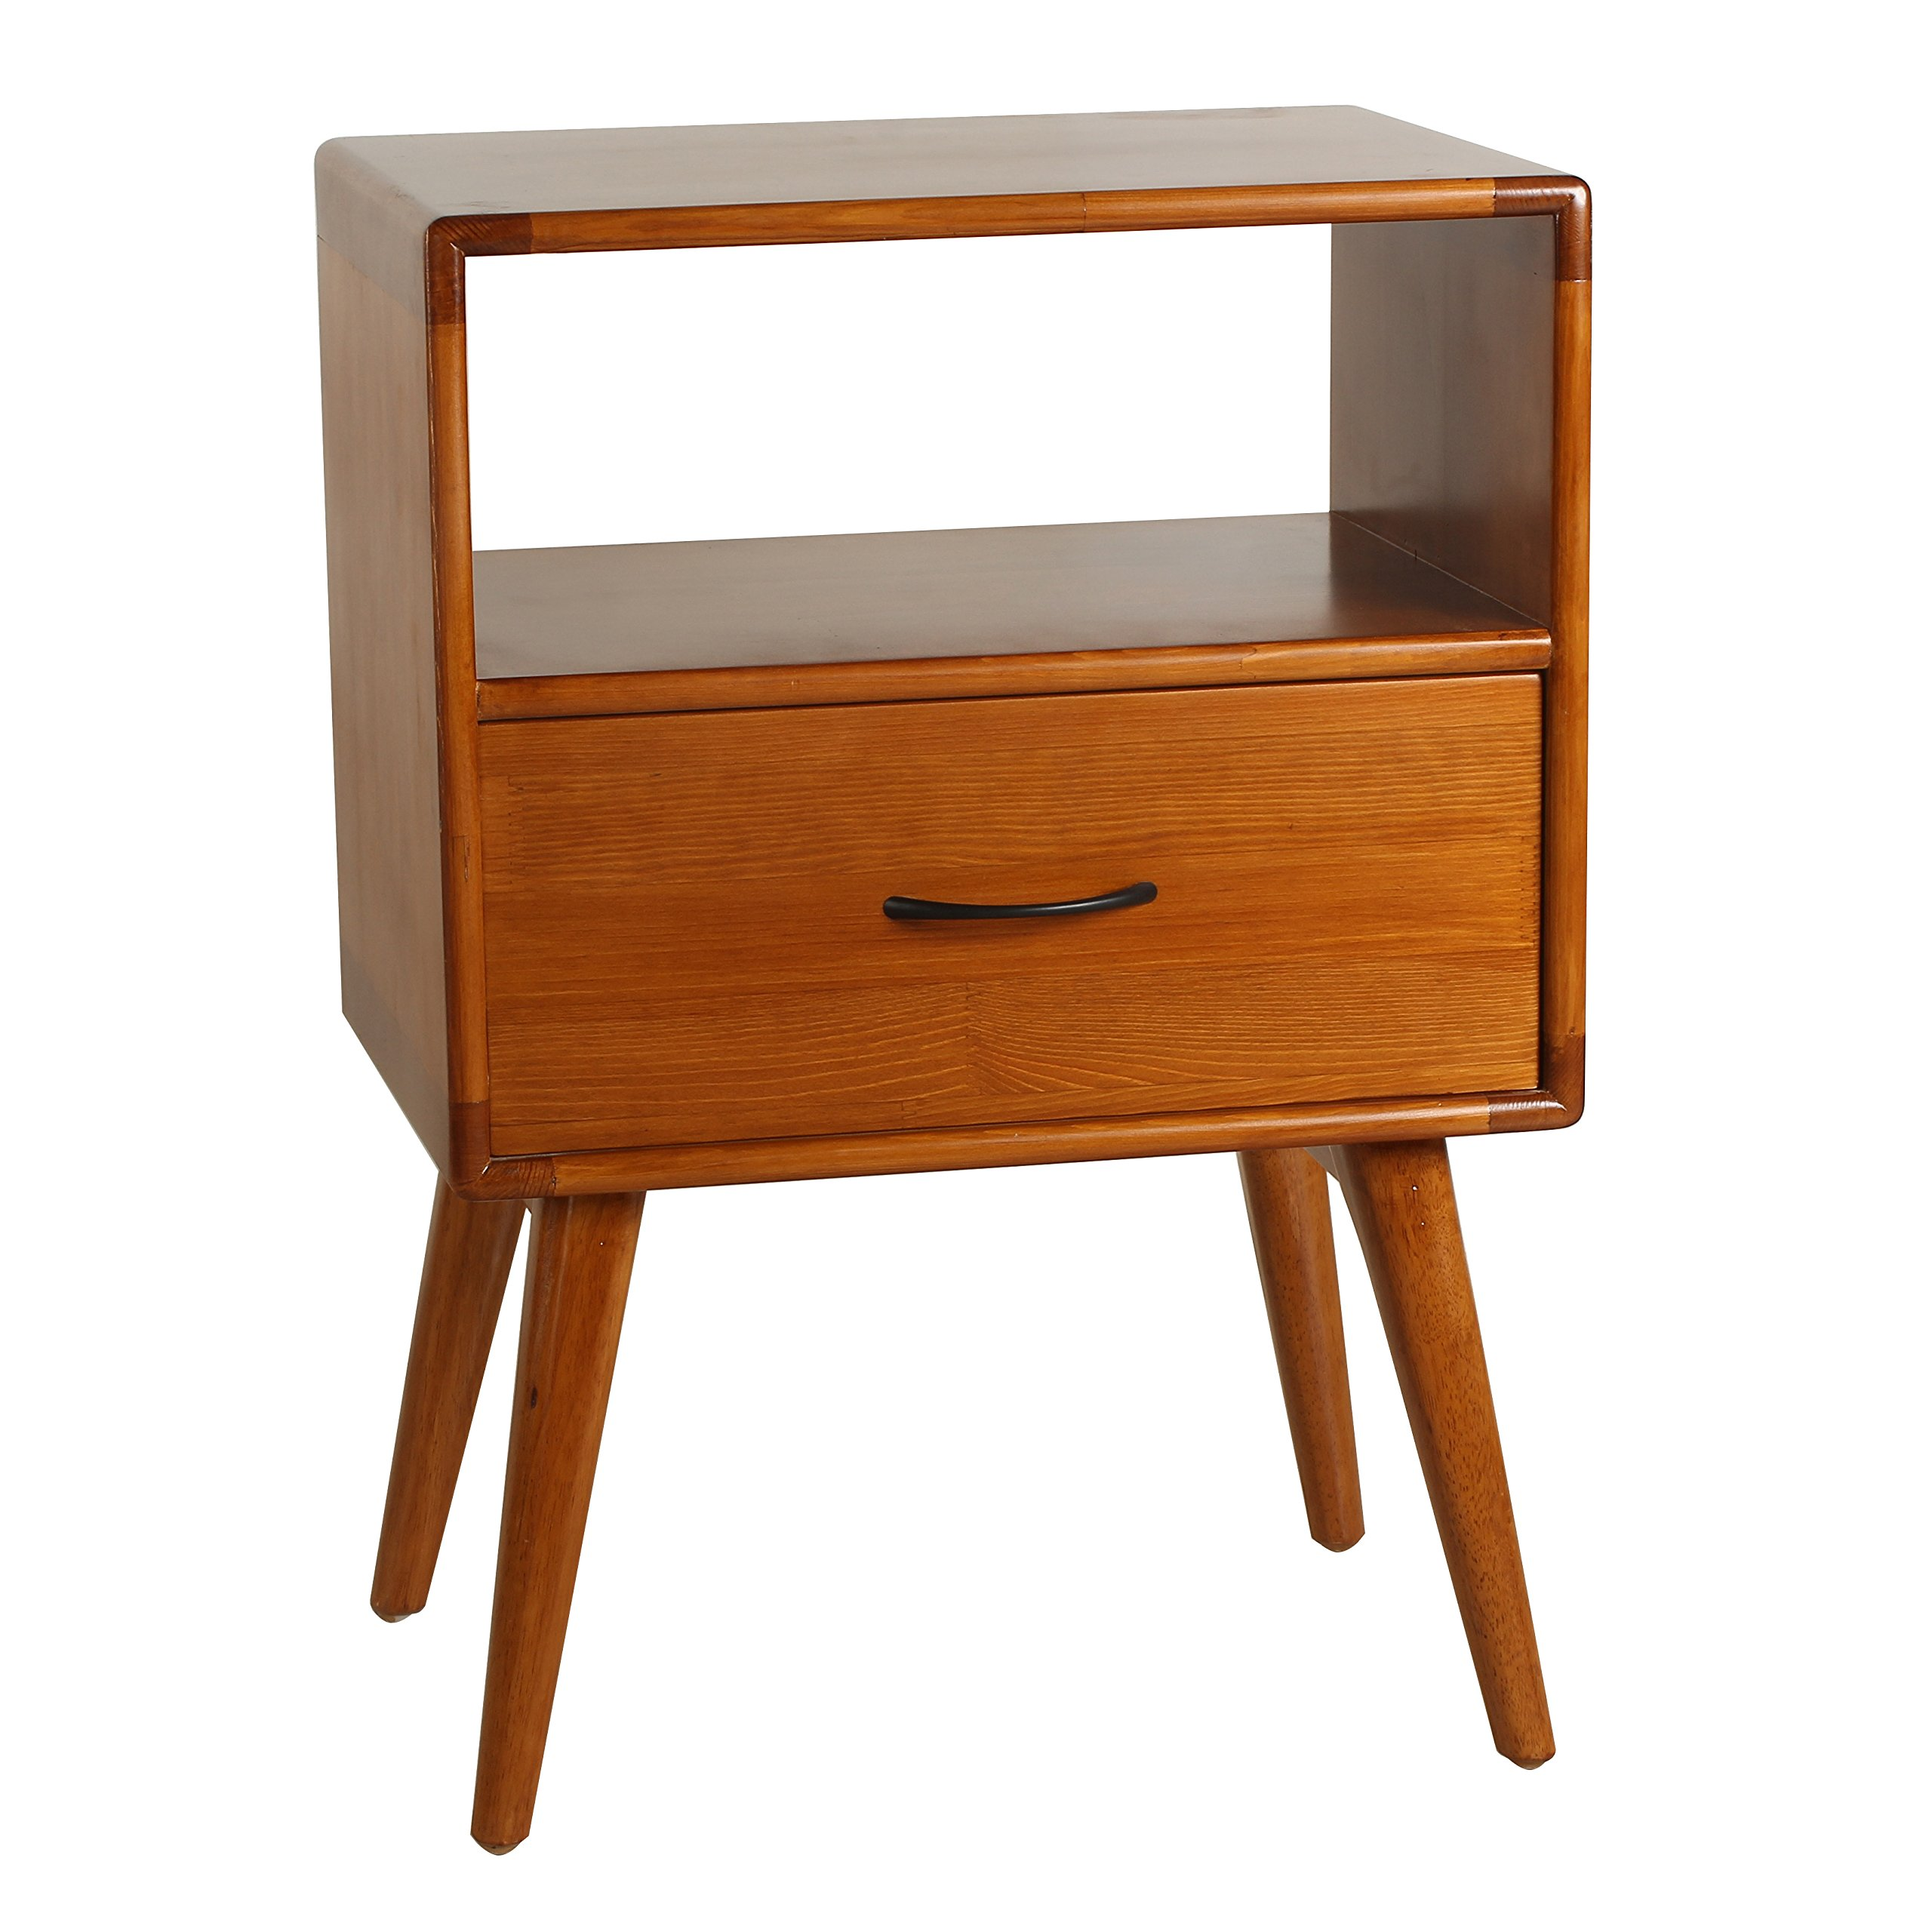 Porthos Home Andrew Mid-Century Modern End Table with Shelf and Pull-Out Drawer, Crafted from Solid Pine Wood with Walnut Finish, Suitable for Small Living Rooms and Bedrooms, One Size, Natural by Porthos Home